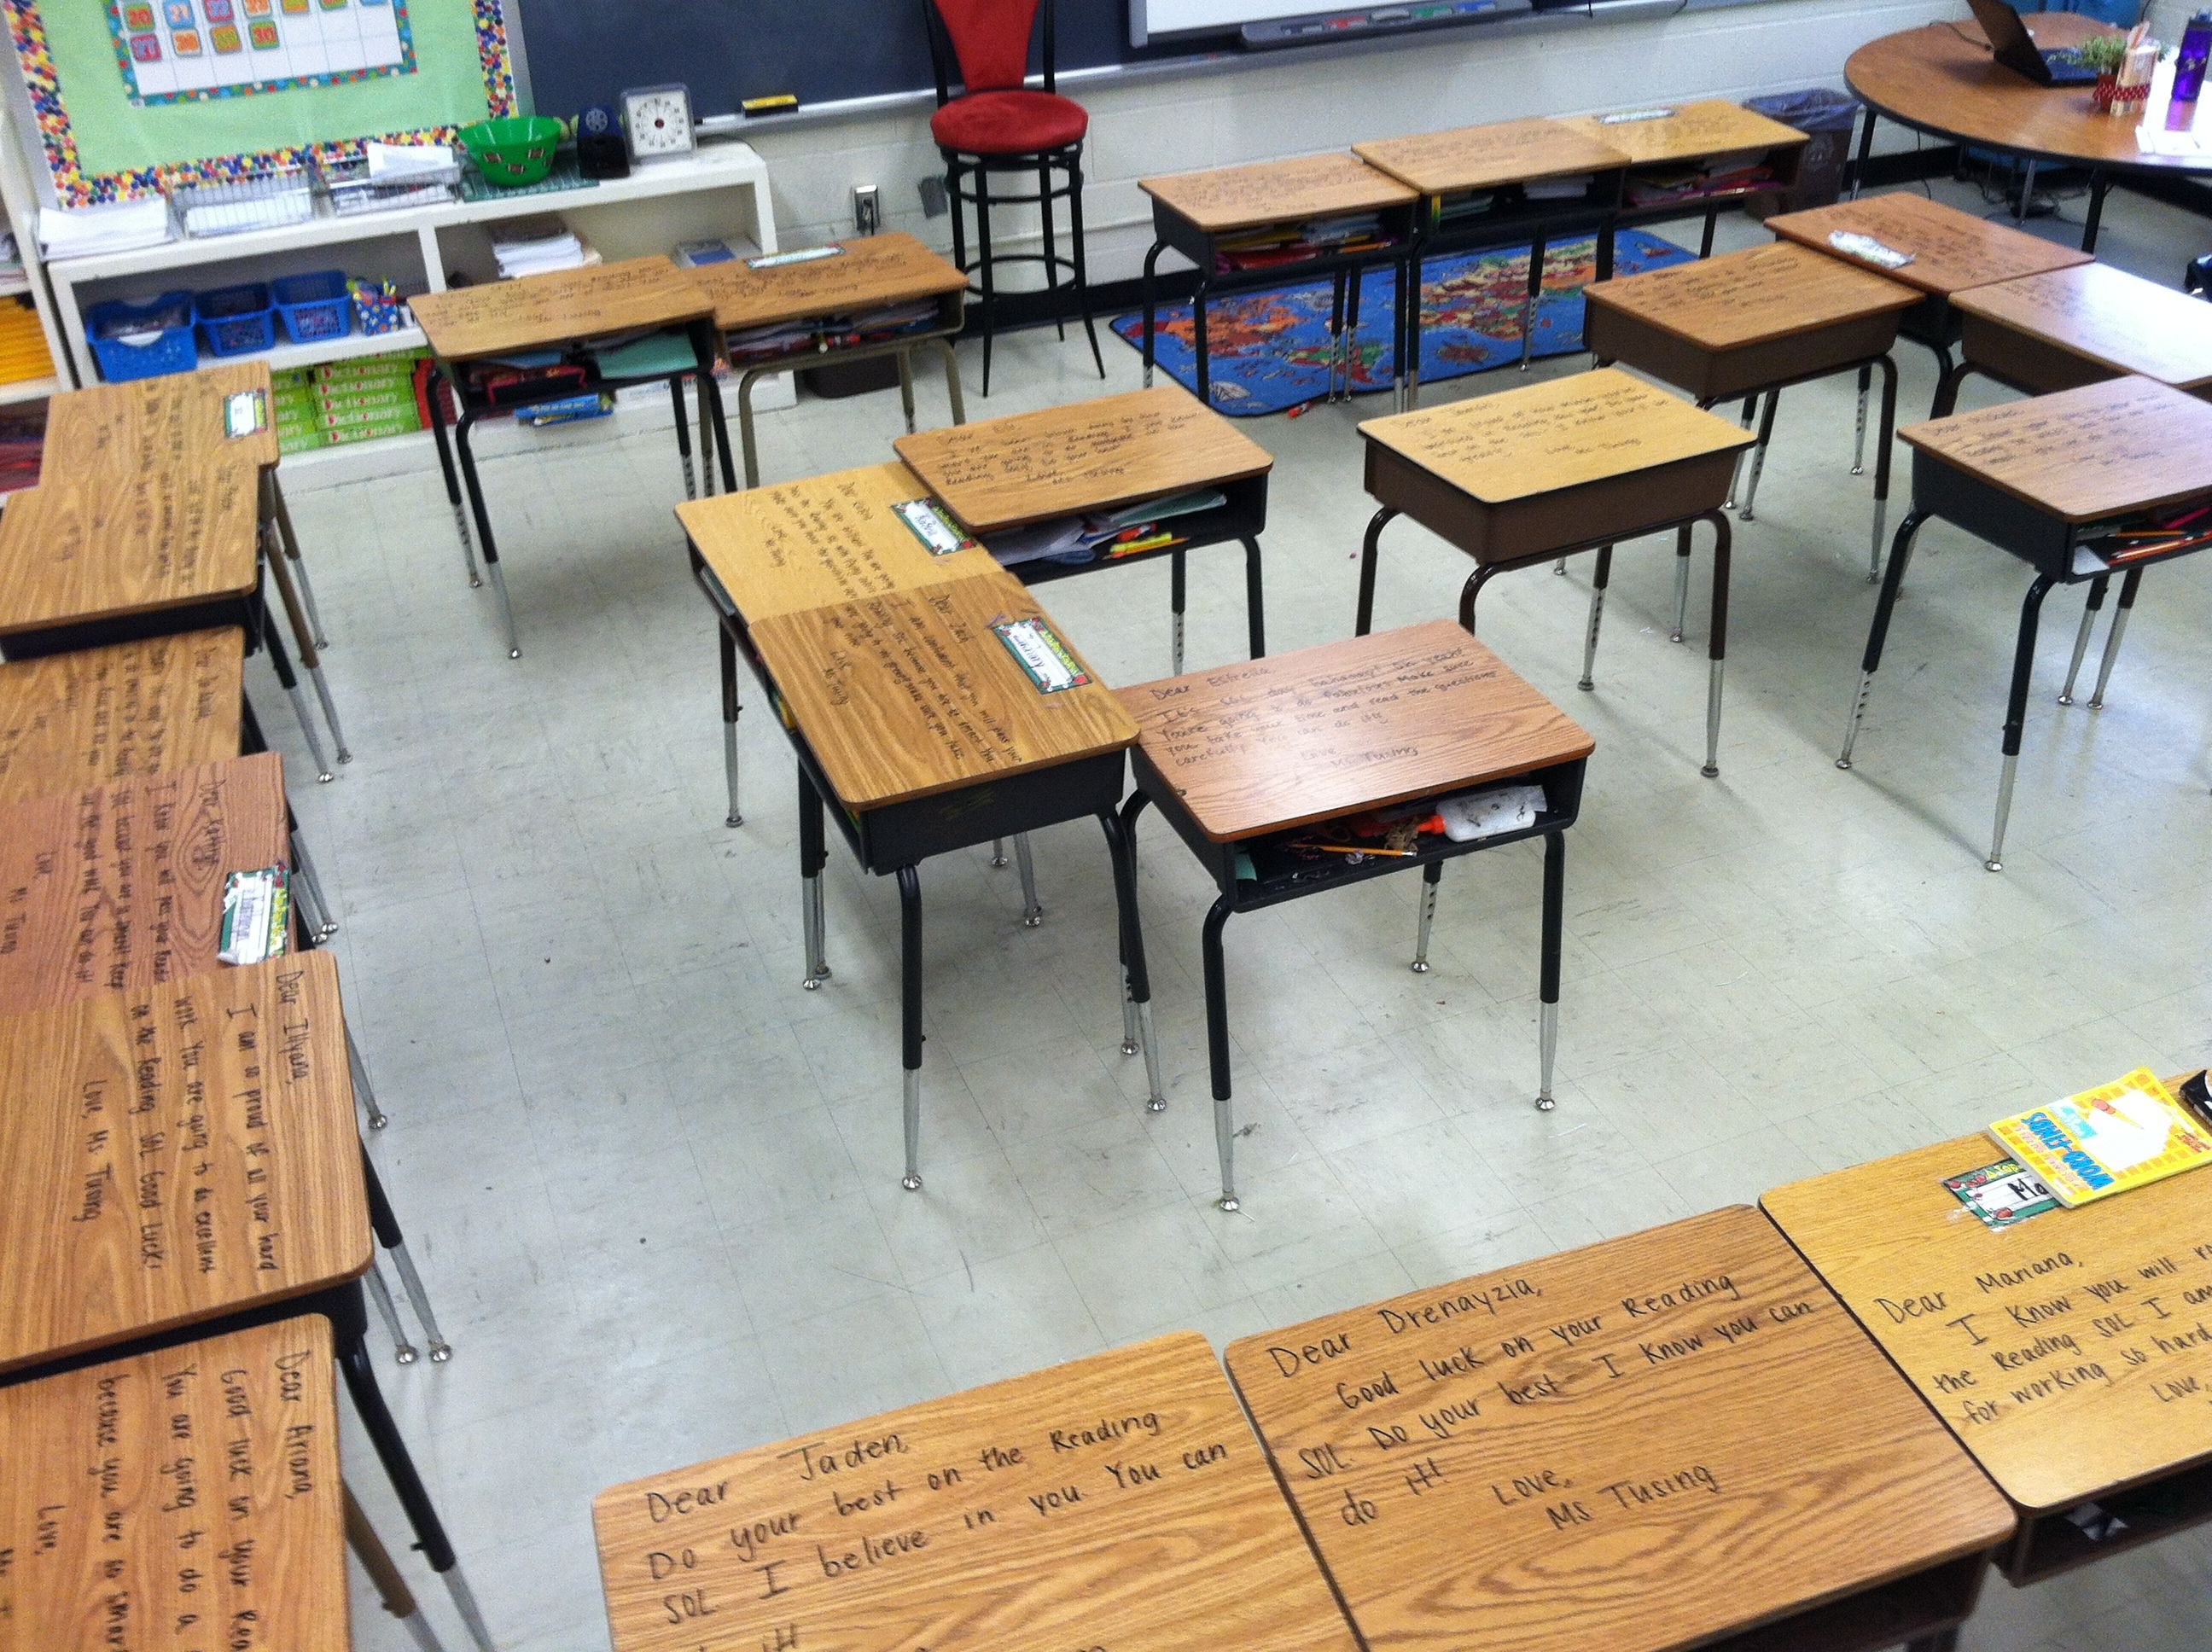 Encouragement notes on each students desk with dry erase marker